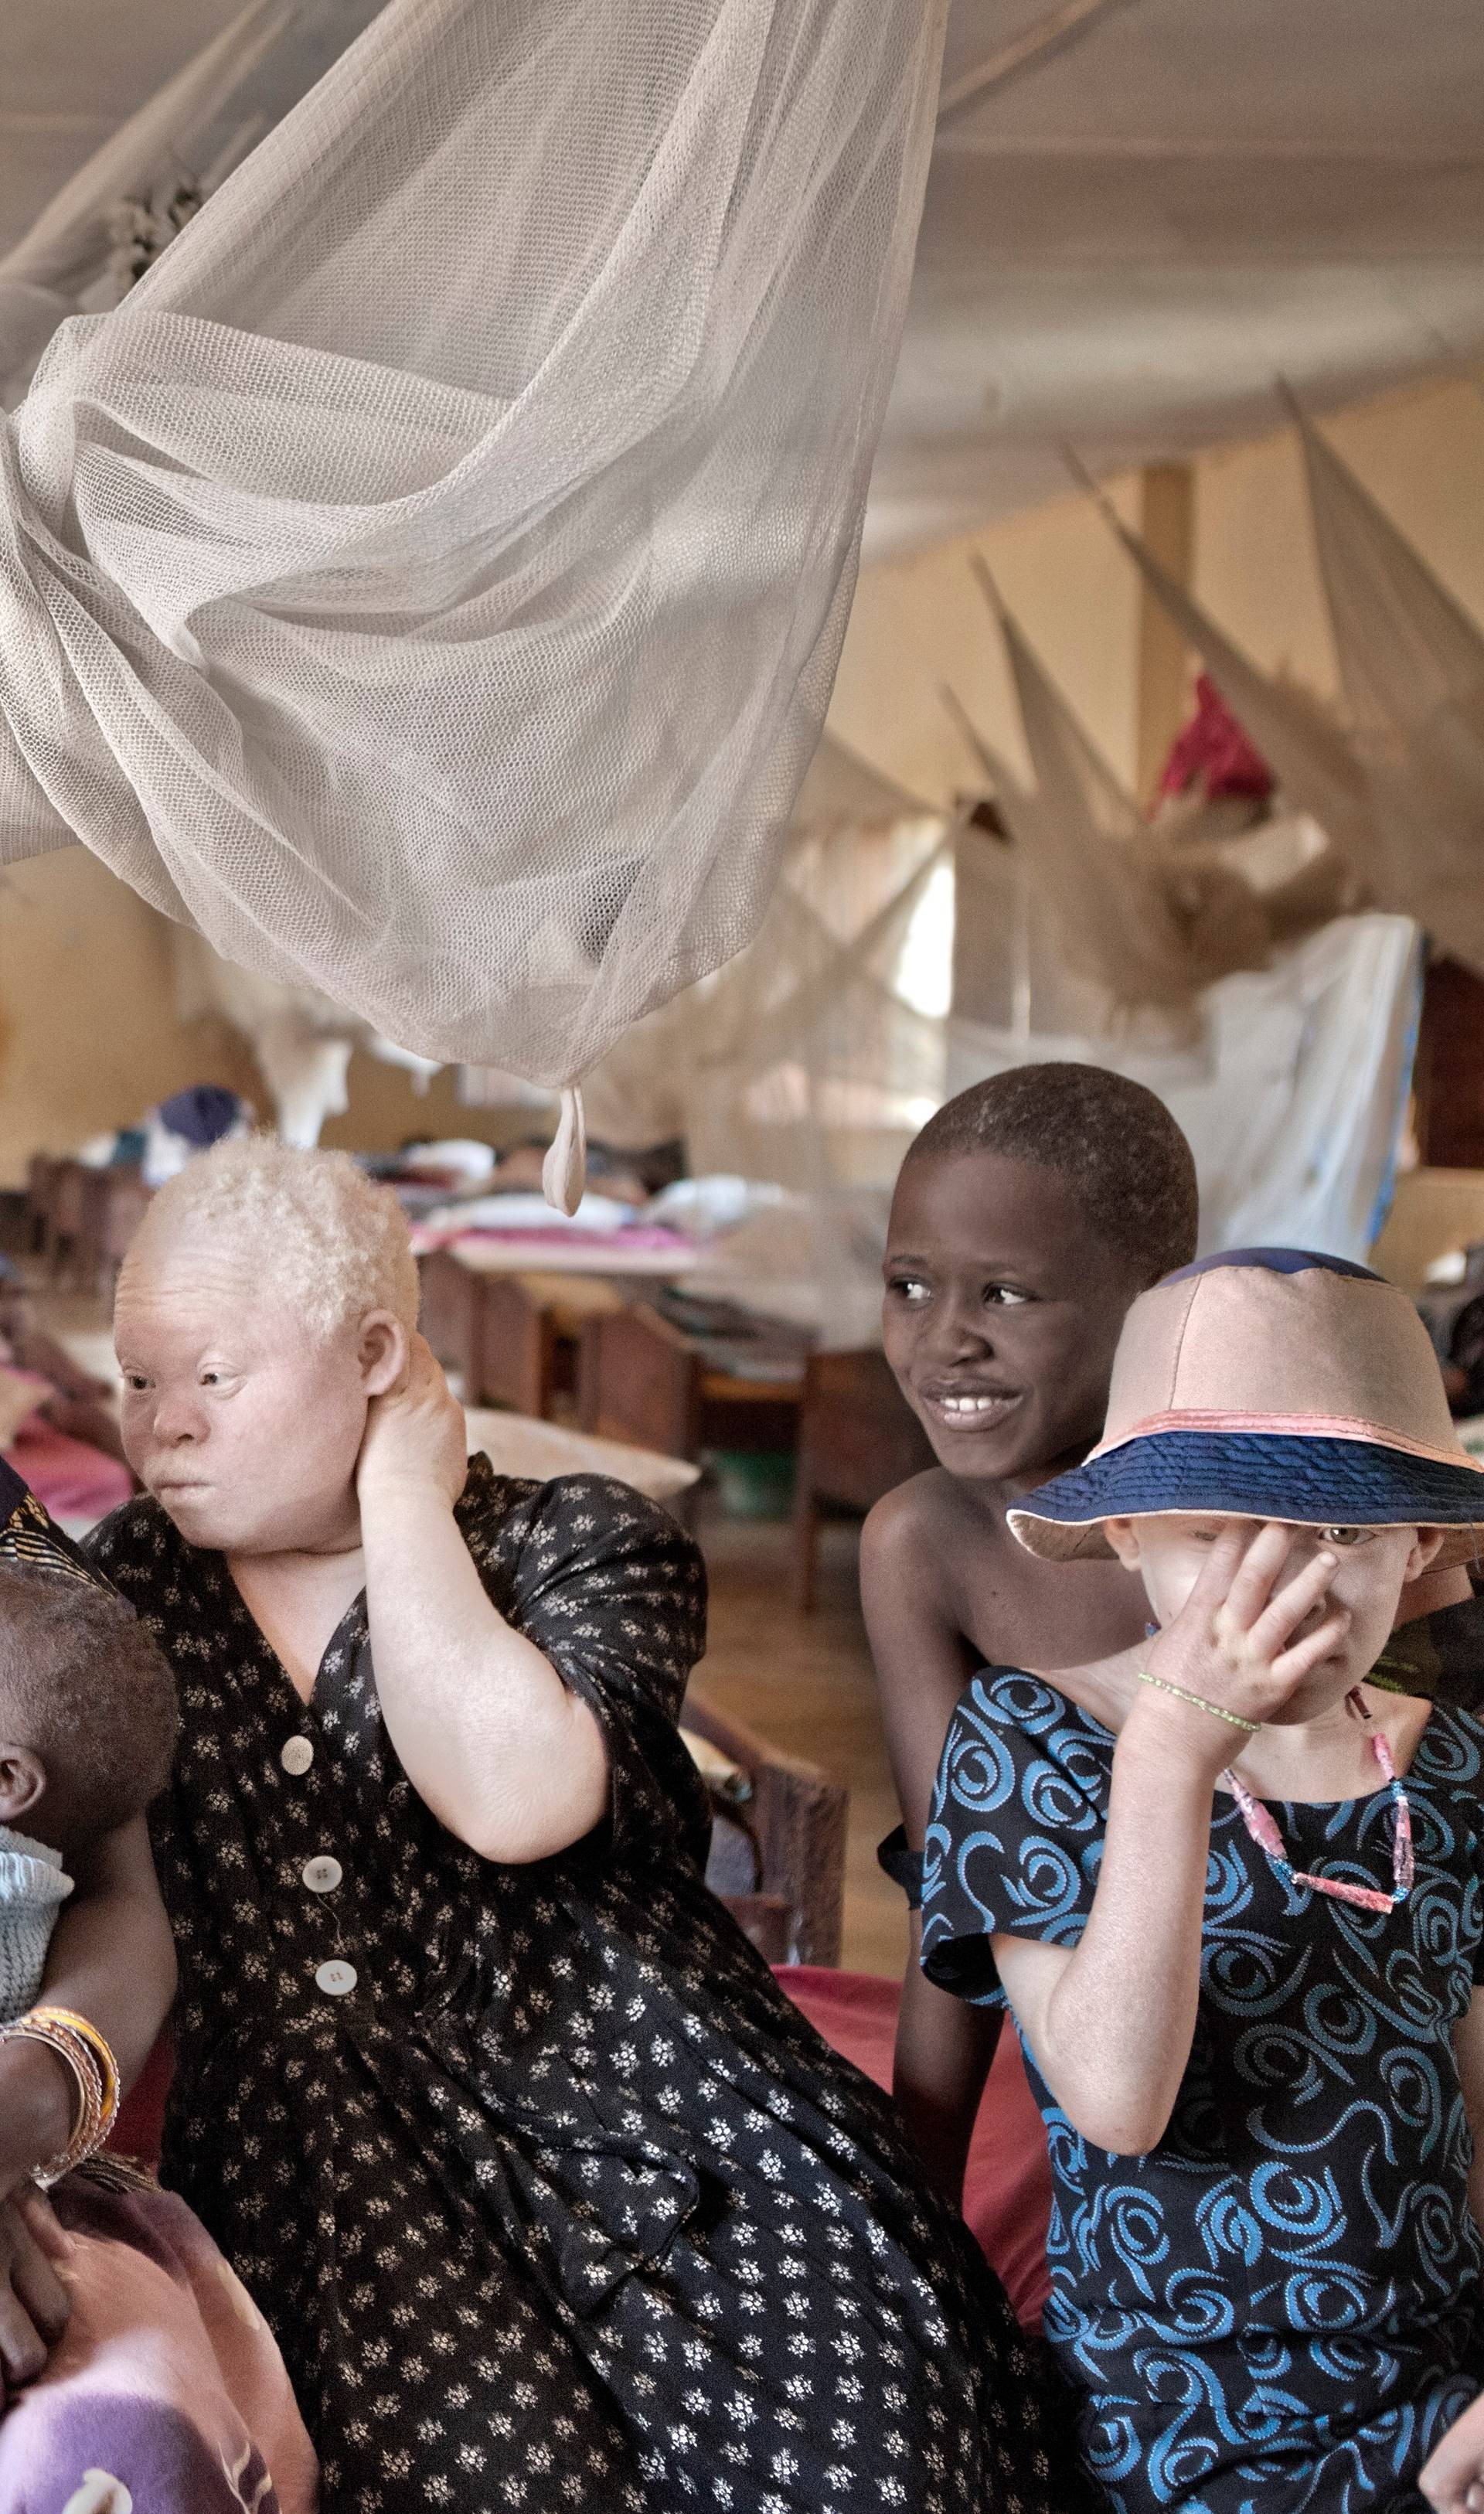 Persecuted: Albino People Seek Refuge From Vicious Body Part Traffickers